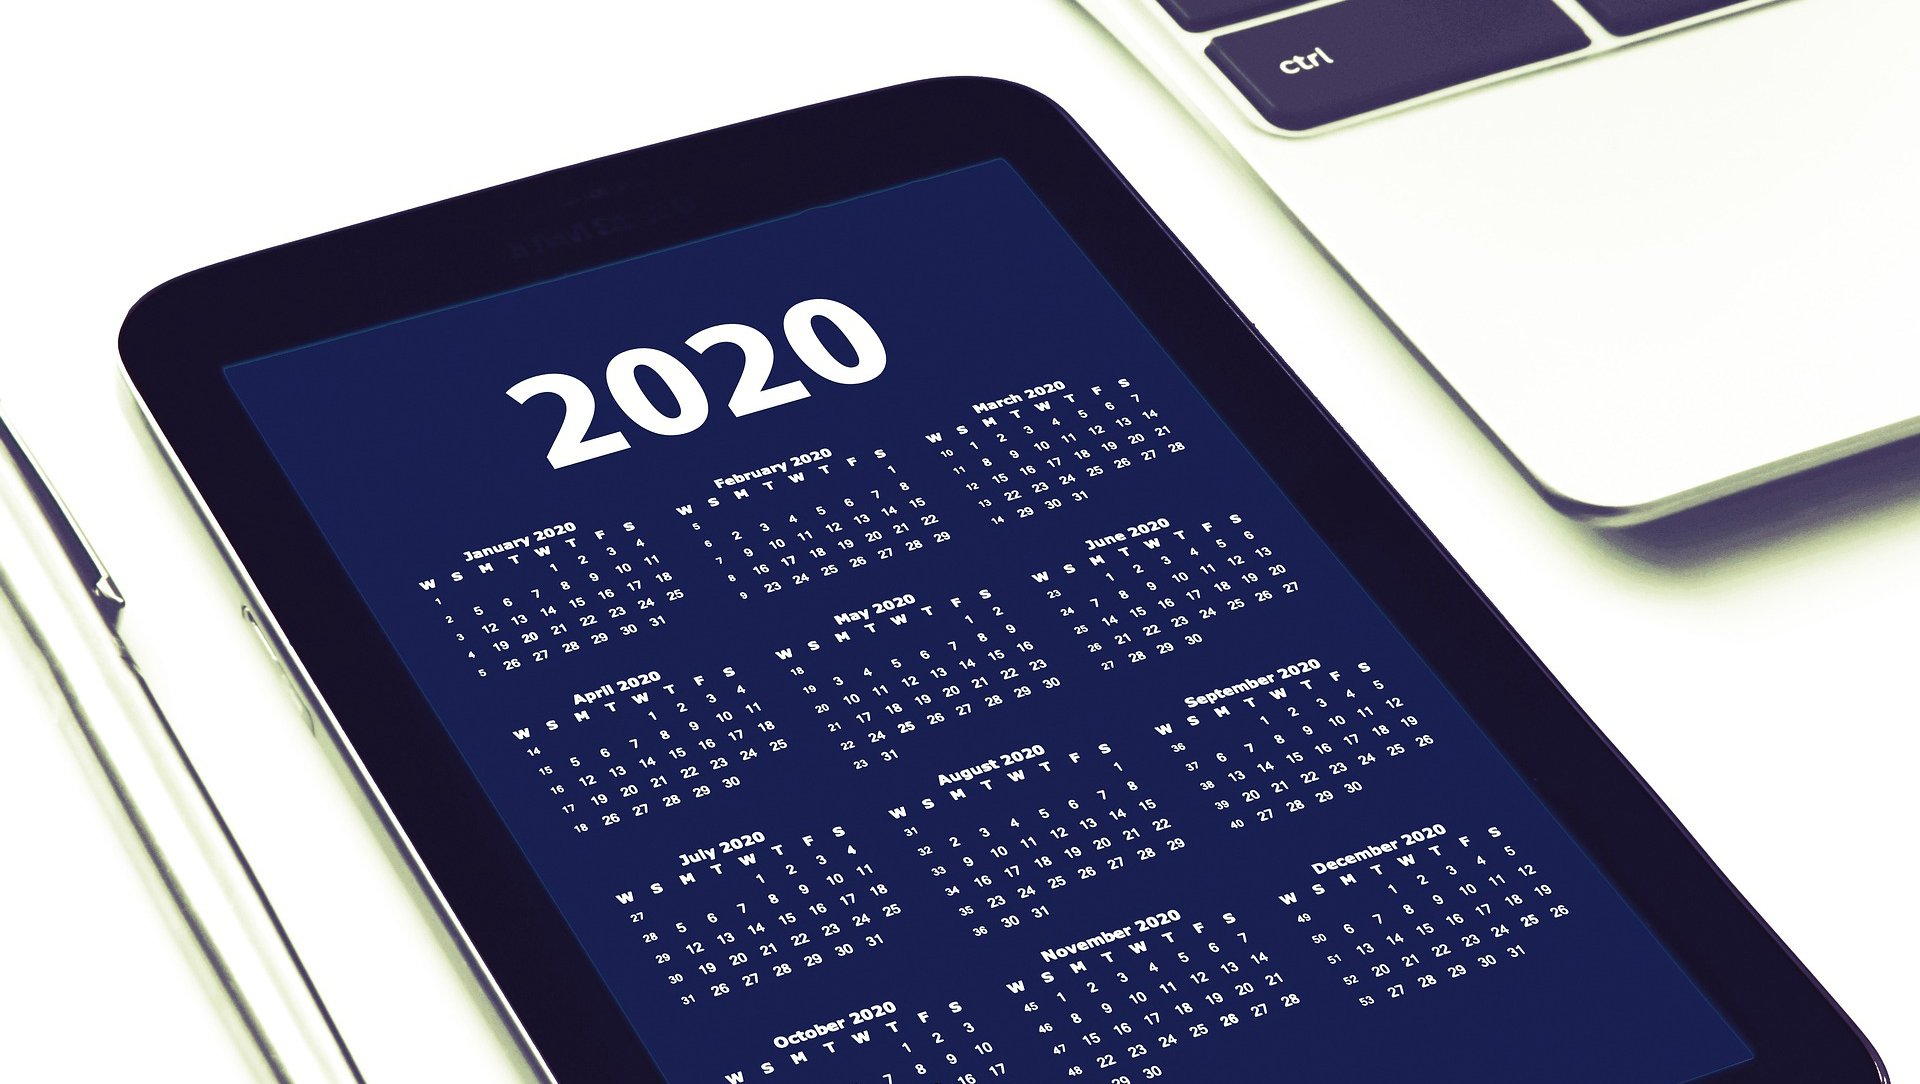 How the Medicare Final Rule For 2020 Will Affect Radiologists Image by Gerd Altmann from Pixabay